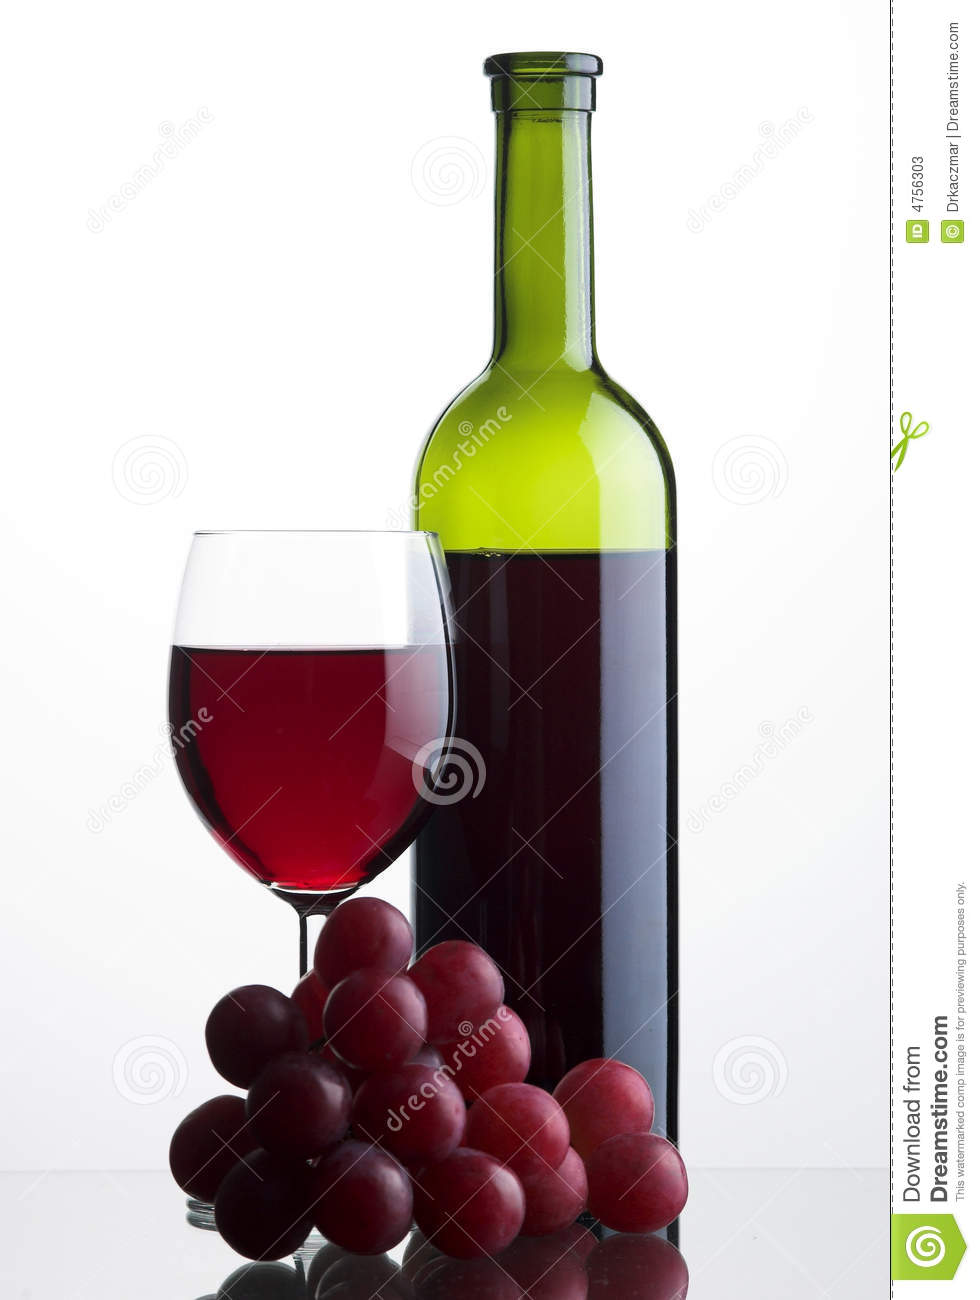 Bottle and glass of red wine with grapes stock photos for Wine bottle glass